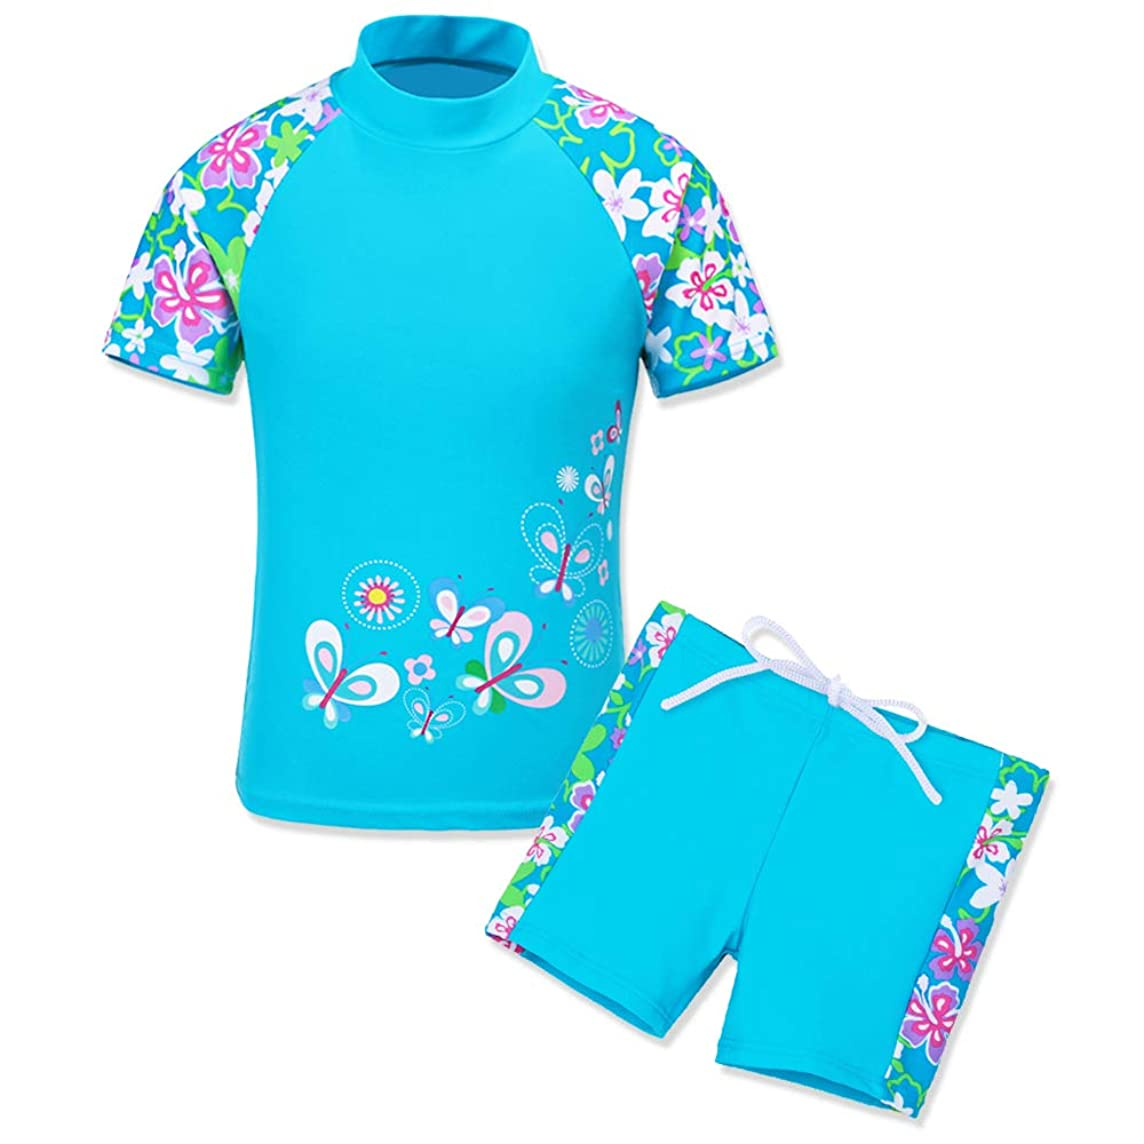 HUANQIUE Girls Swimsuit UPF50+ 3-12 Years Two Piece Tankini